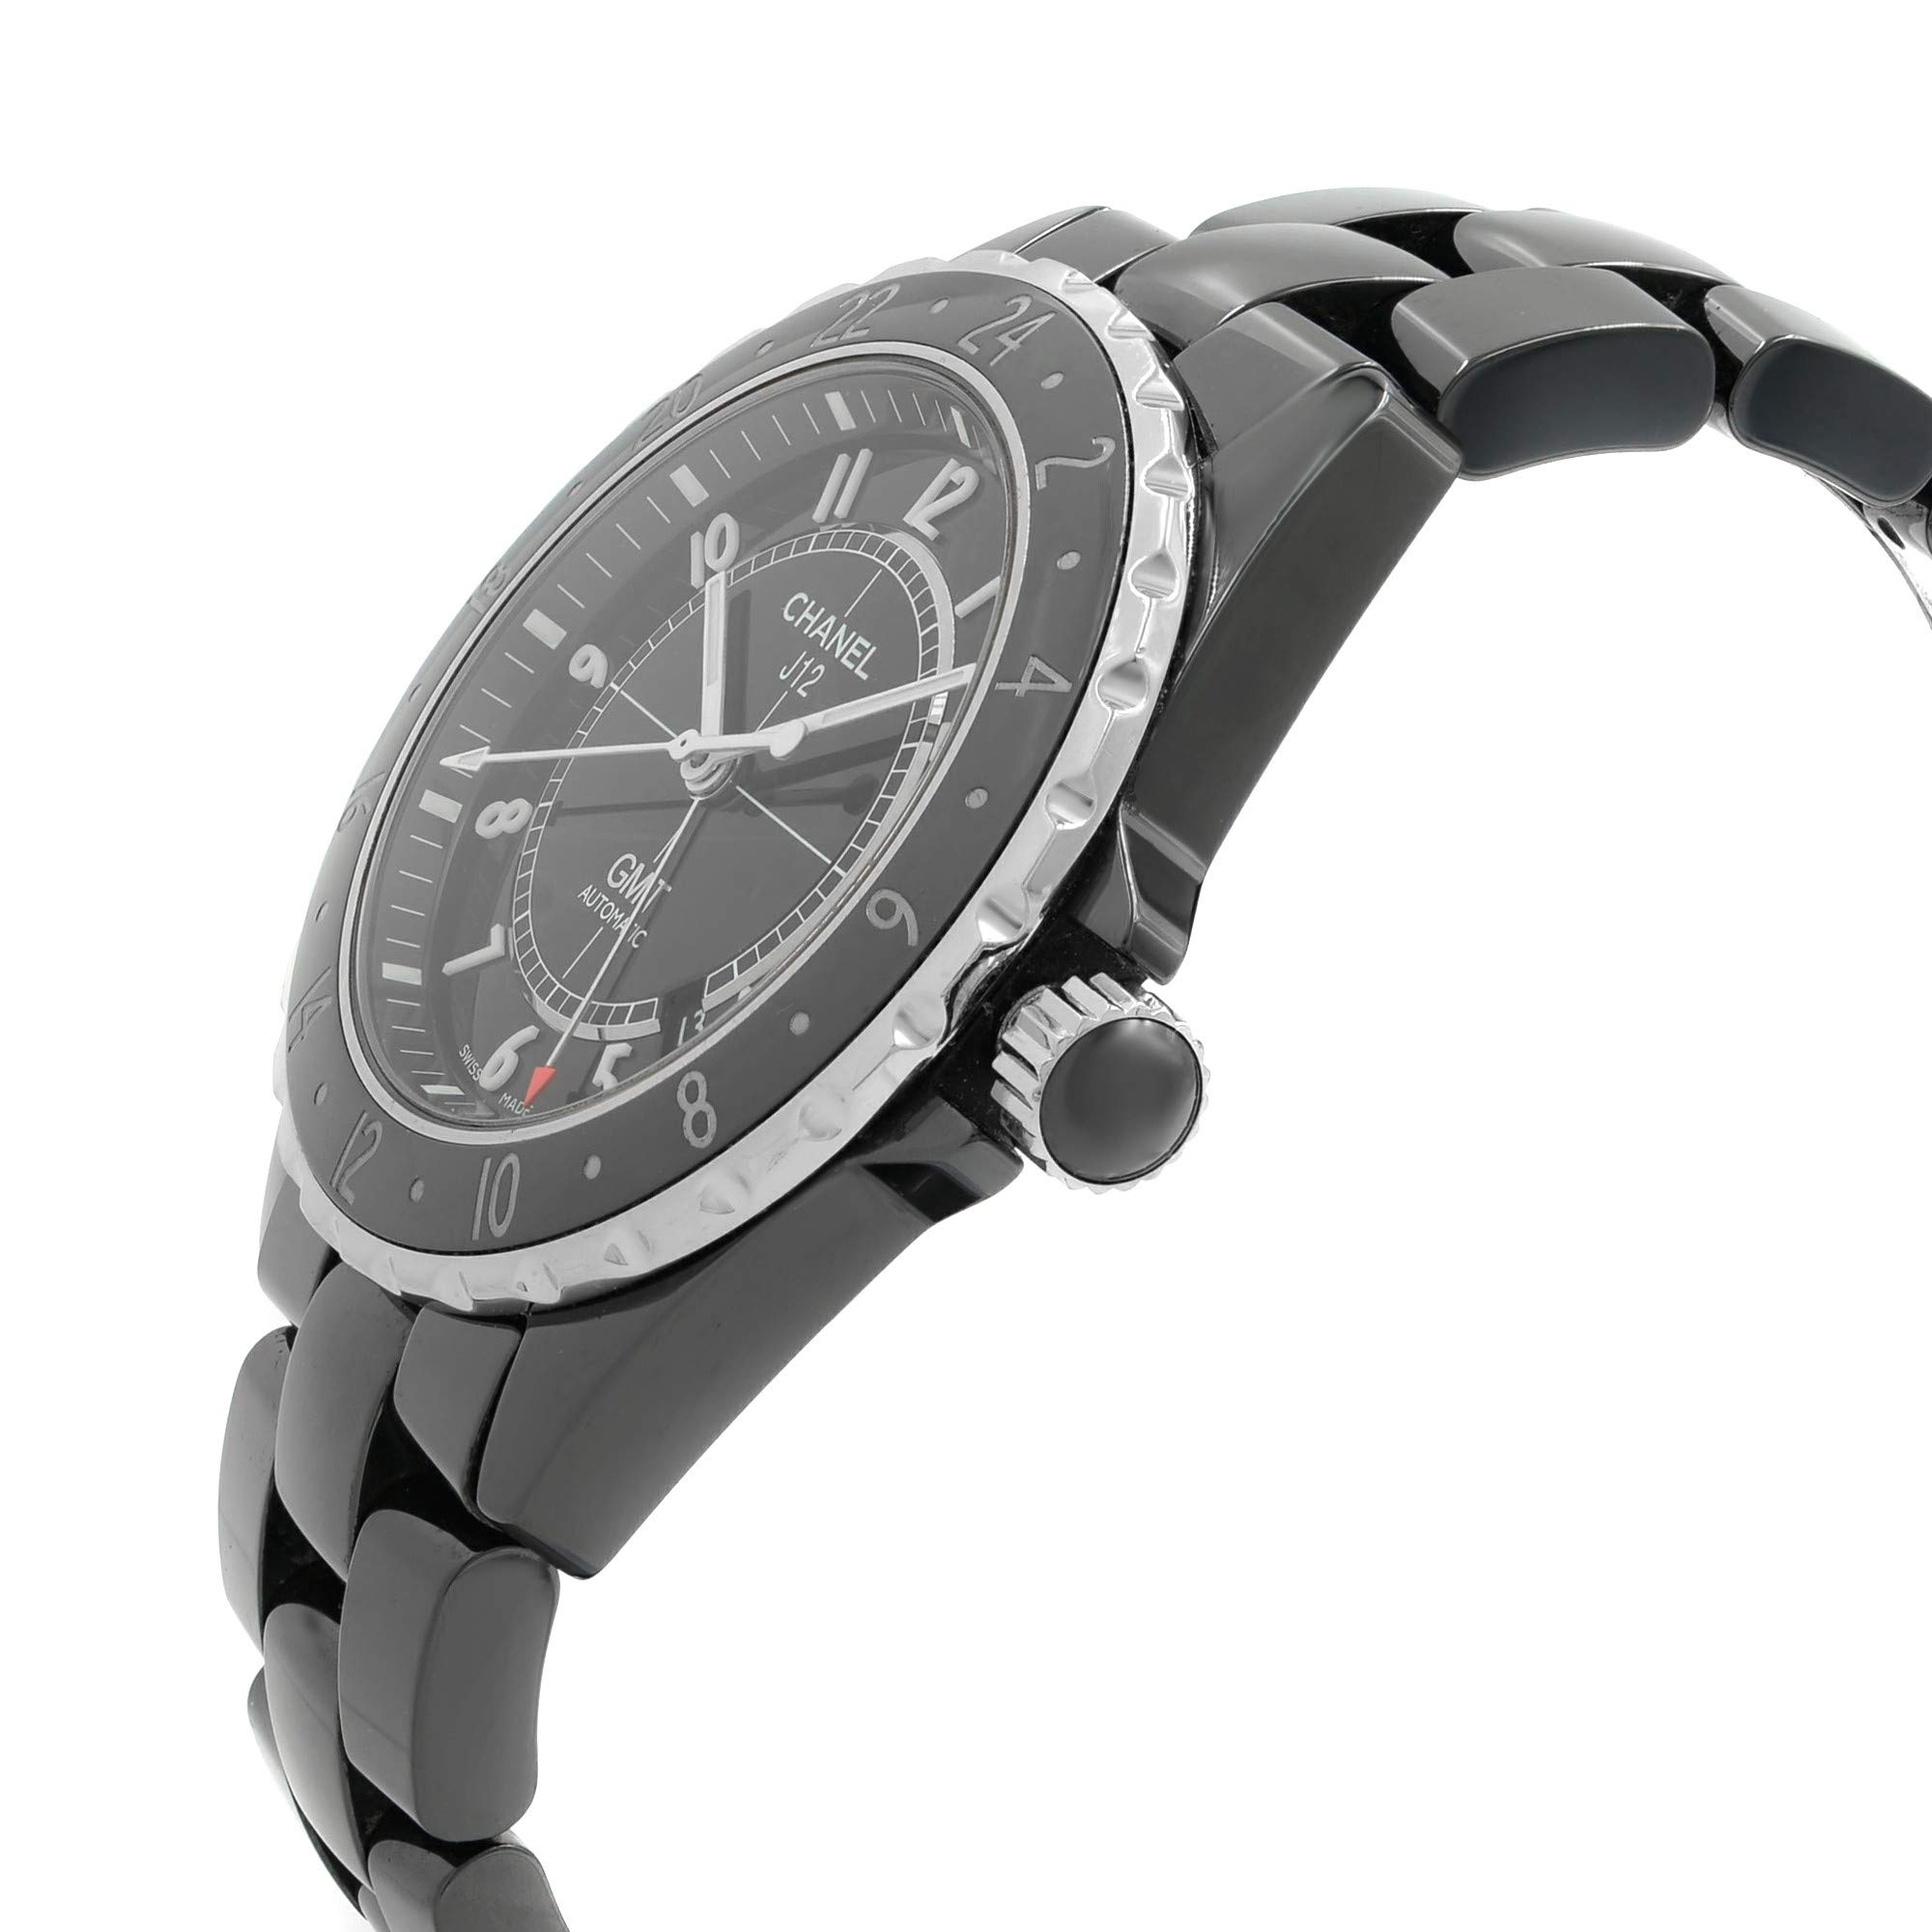 Chanel J12 Automatic-self-Wind Male Watch H2012 (Certified Pre-Owned) by CHANEL (Image #3)